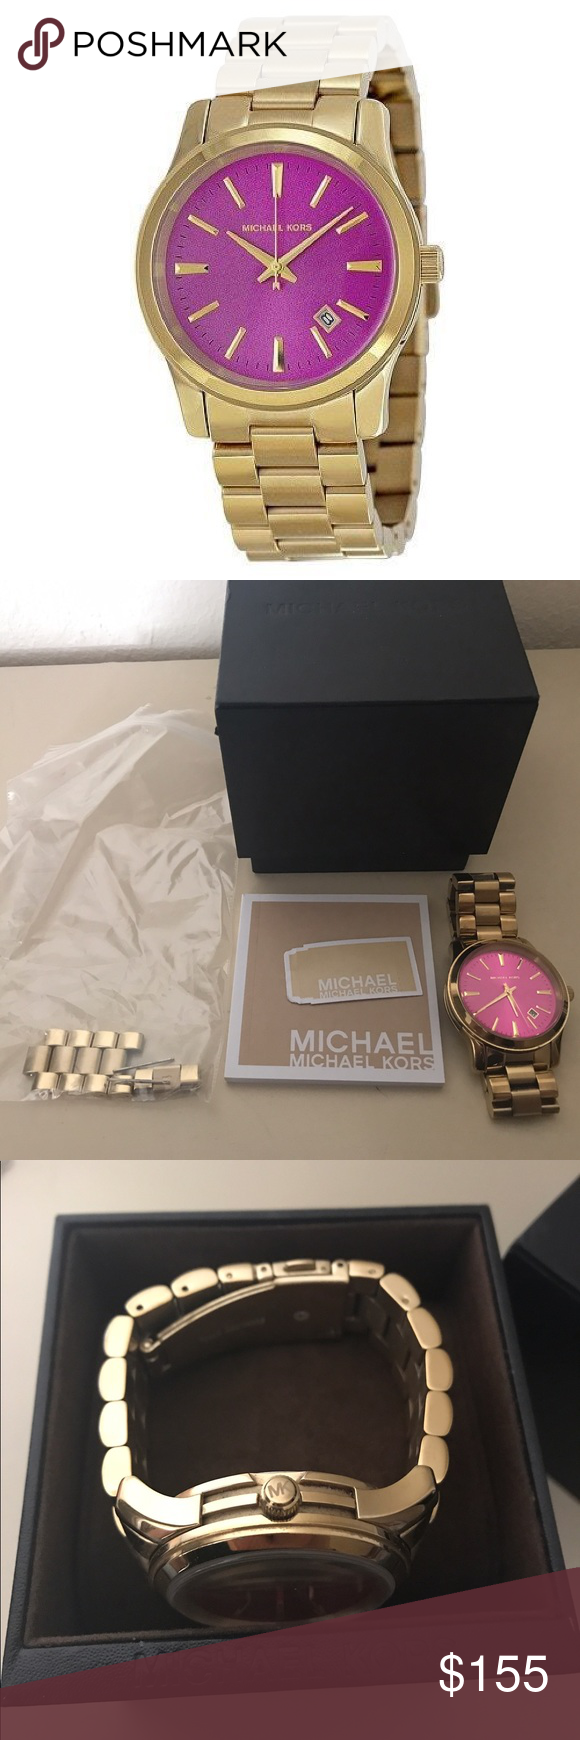 Michael Kors Watch Gold Michael Kors Runway Pink Dial Gold-Tone Stainless Steel Watch. Comes with Original Box, Book, and Links. Gently Used. Excellent Condition. Michael Kors Accessories Watches